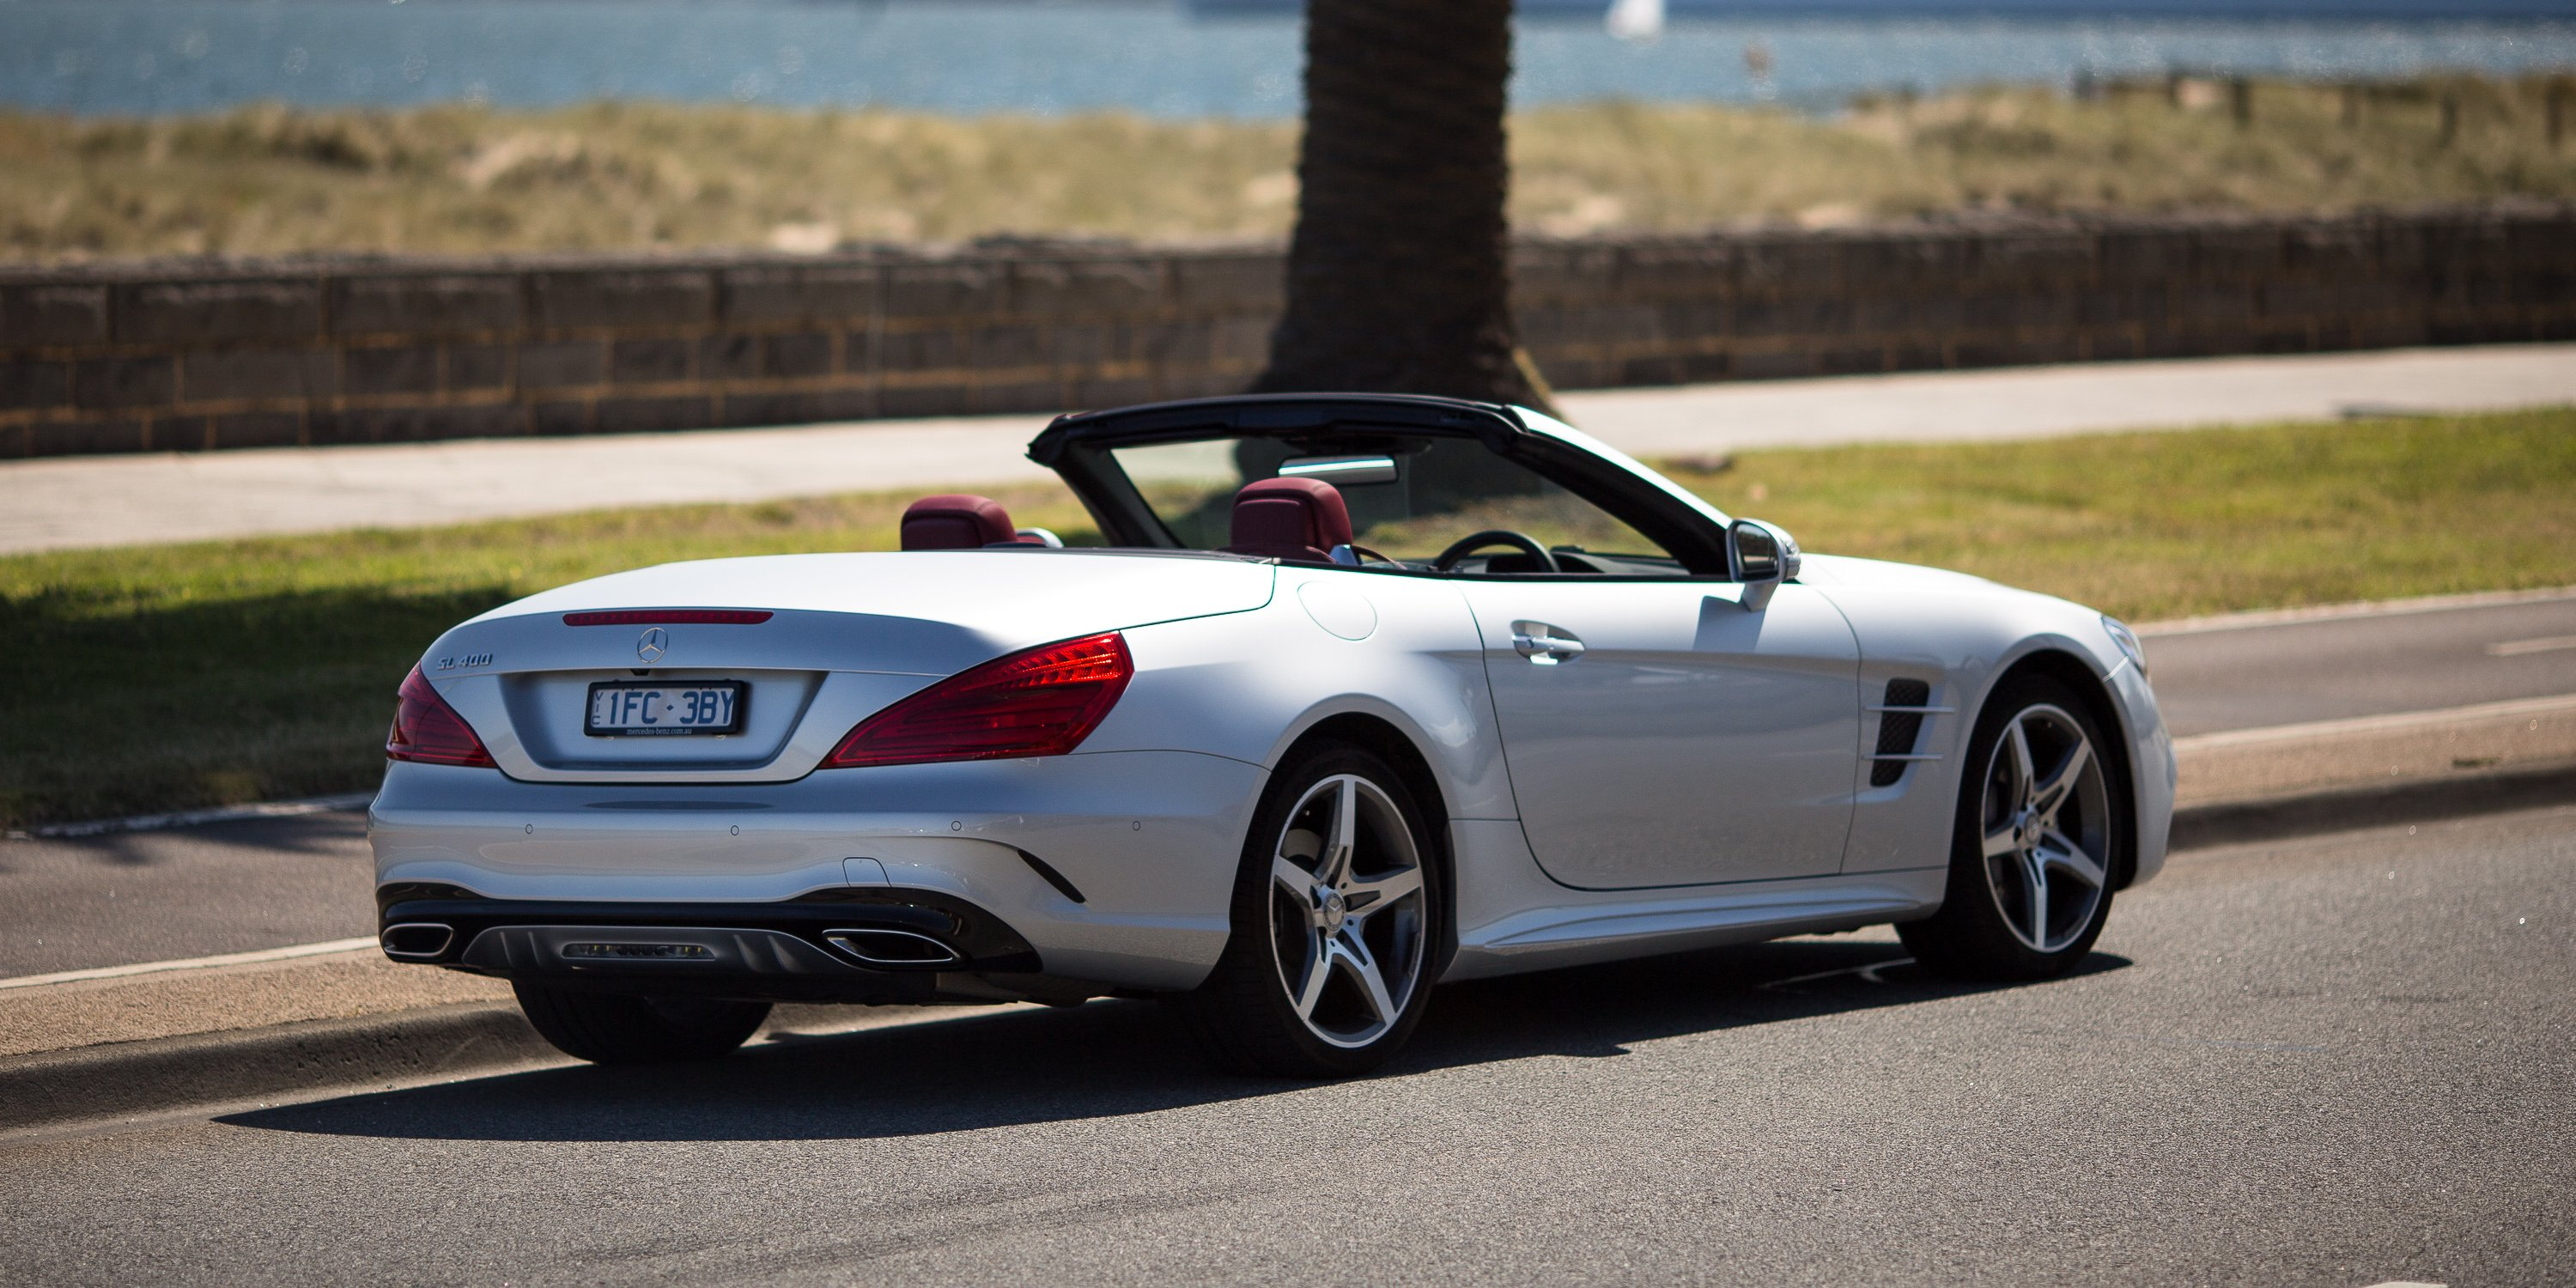 2017 mercedes benz sl400 review caradvice for Mercedes benz of bellevue